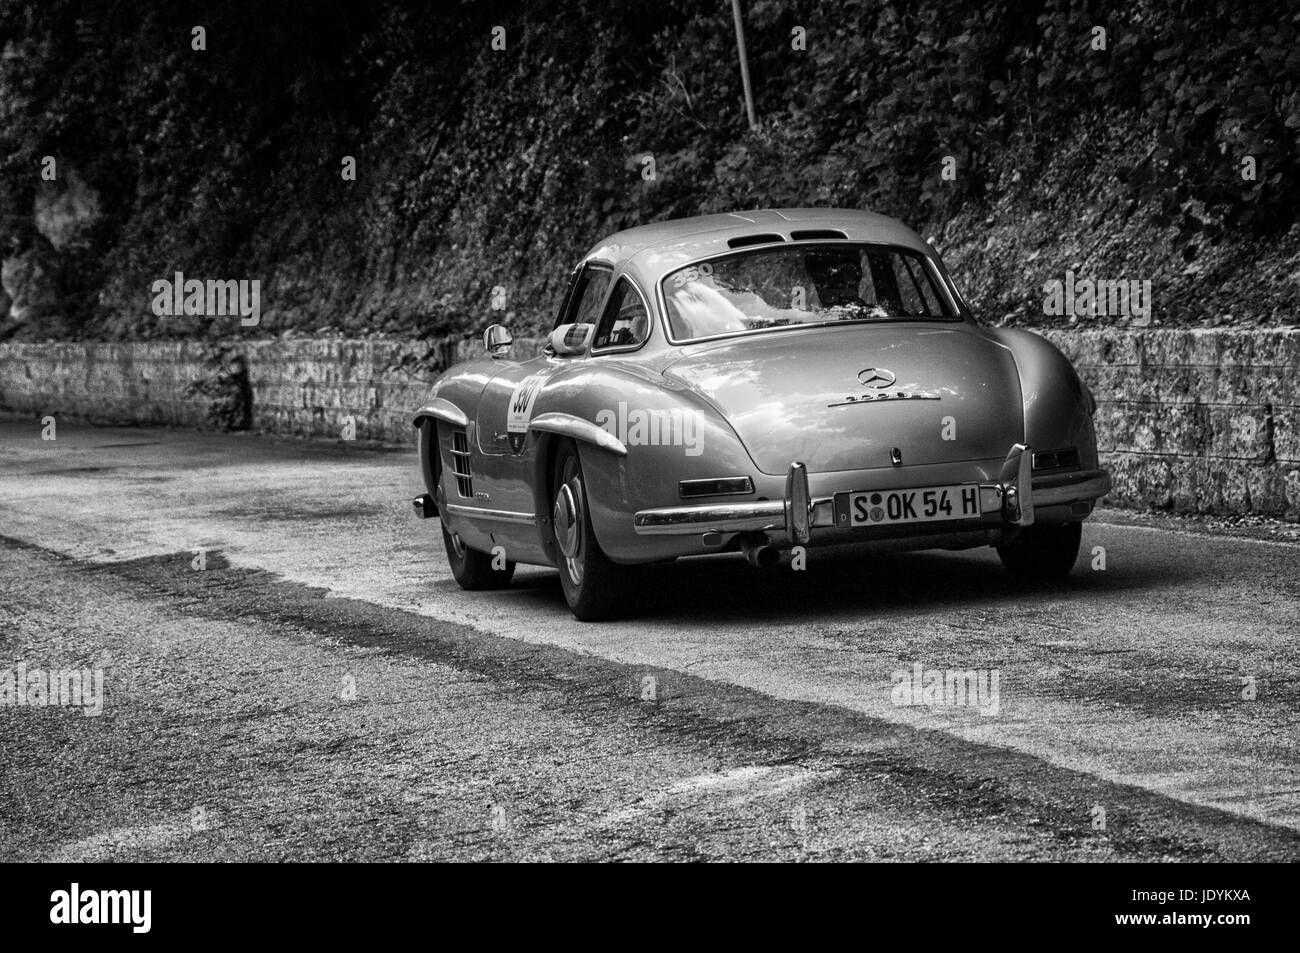 MERCEDES-BENZ 300 SL COUPÉ W 198 1955 on an old racing car in rally ...